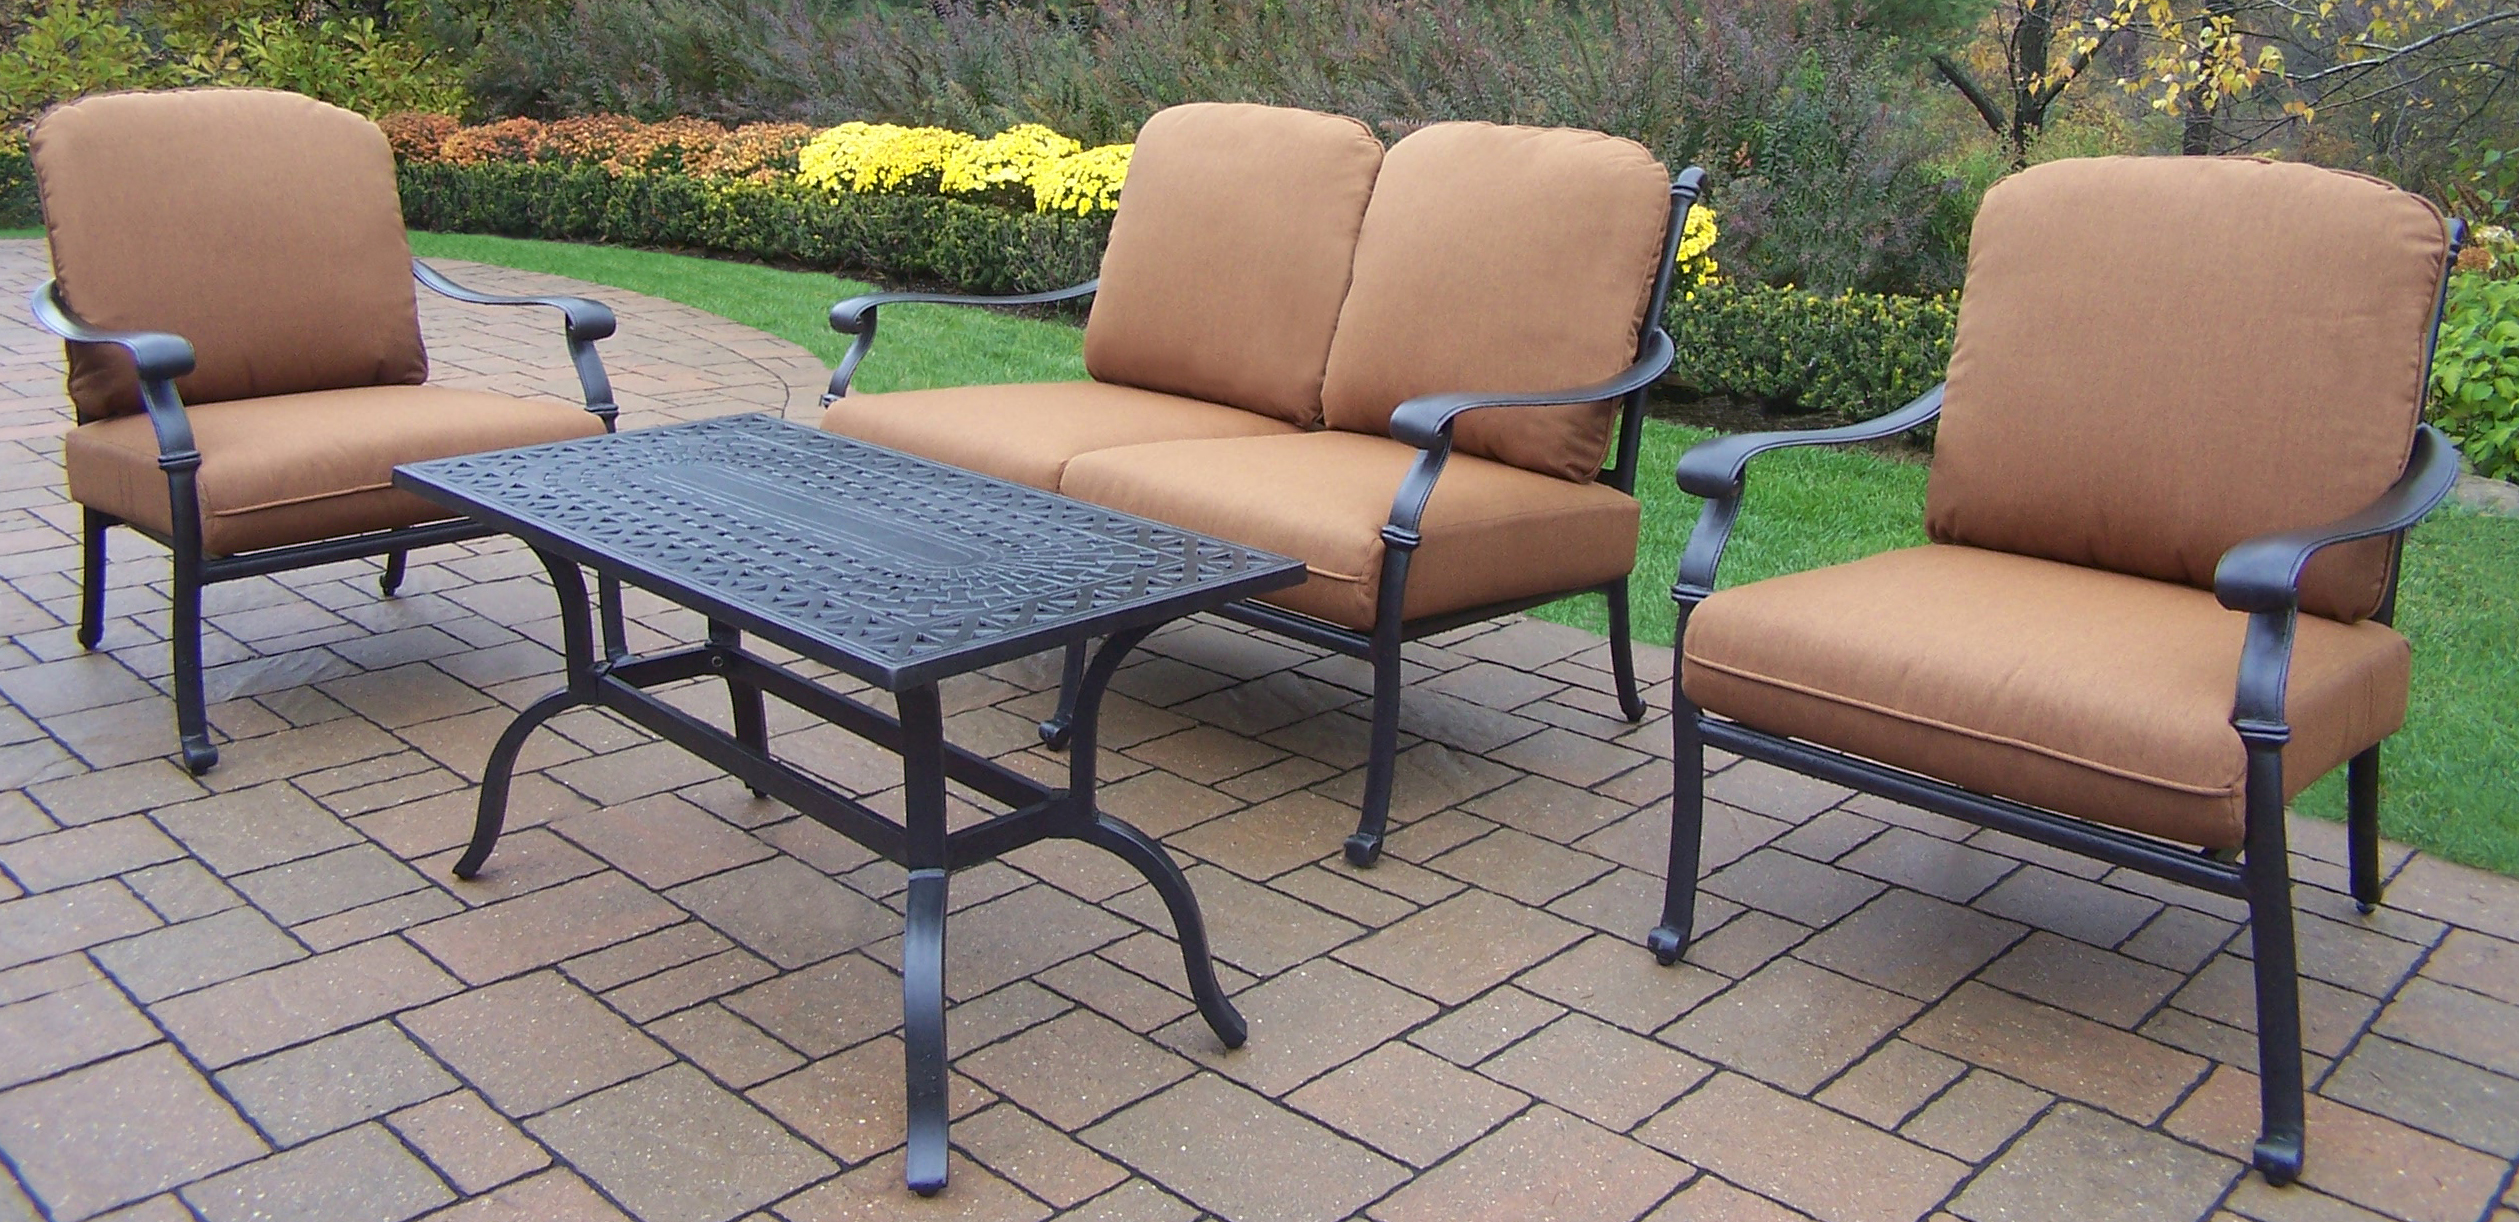 Oakland Living Hampton 4pc Casual Patio Seating Set w ... on Casual Living Patio id=95180